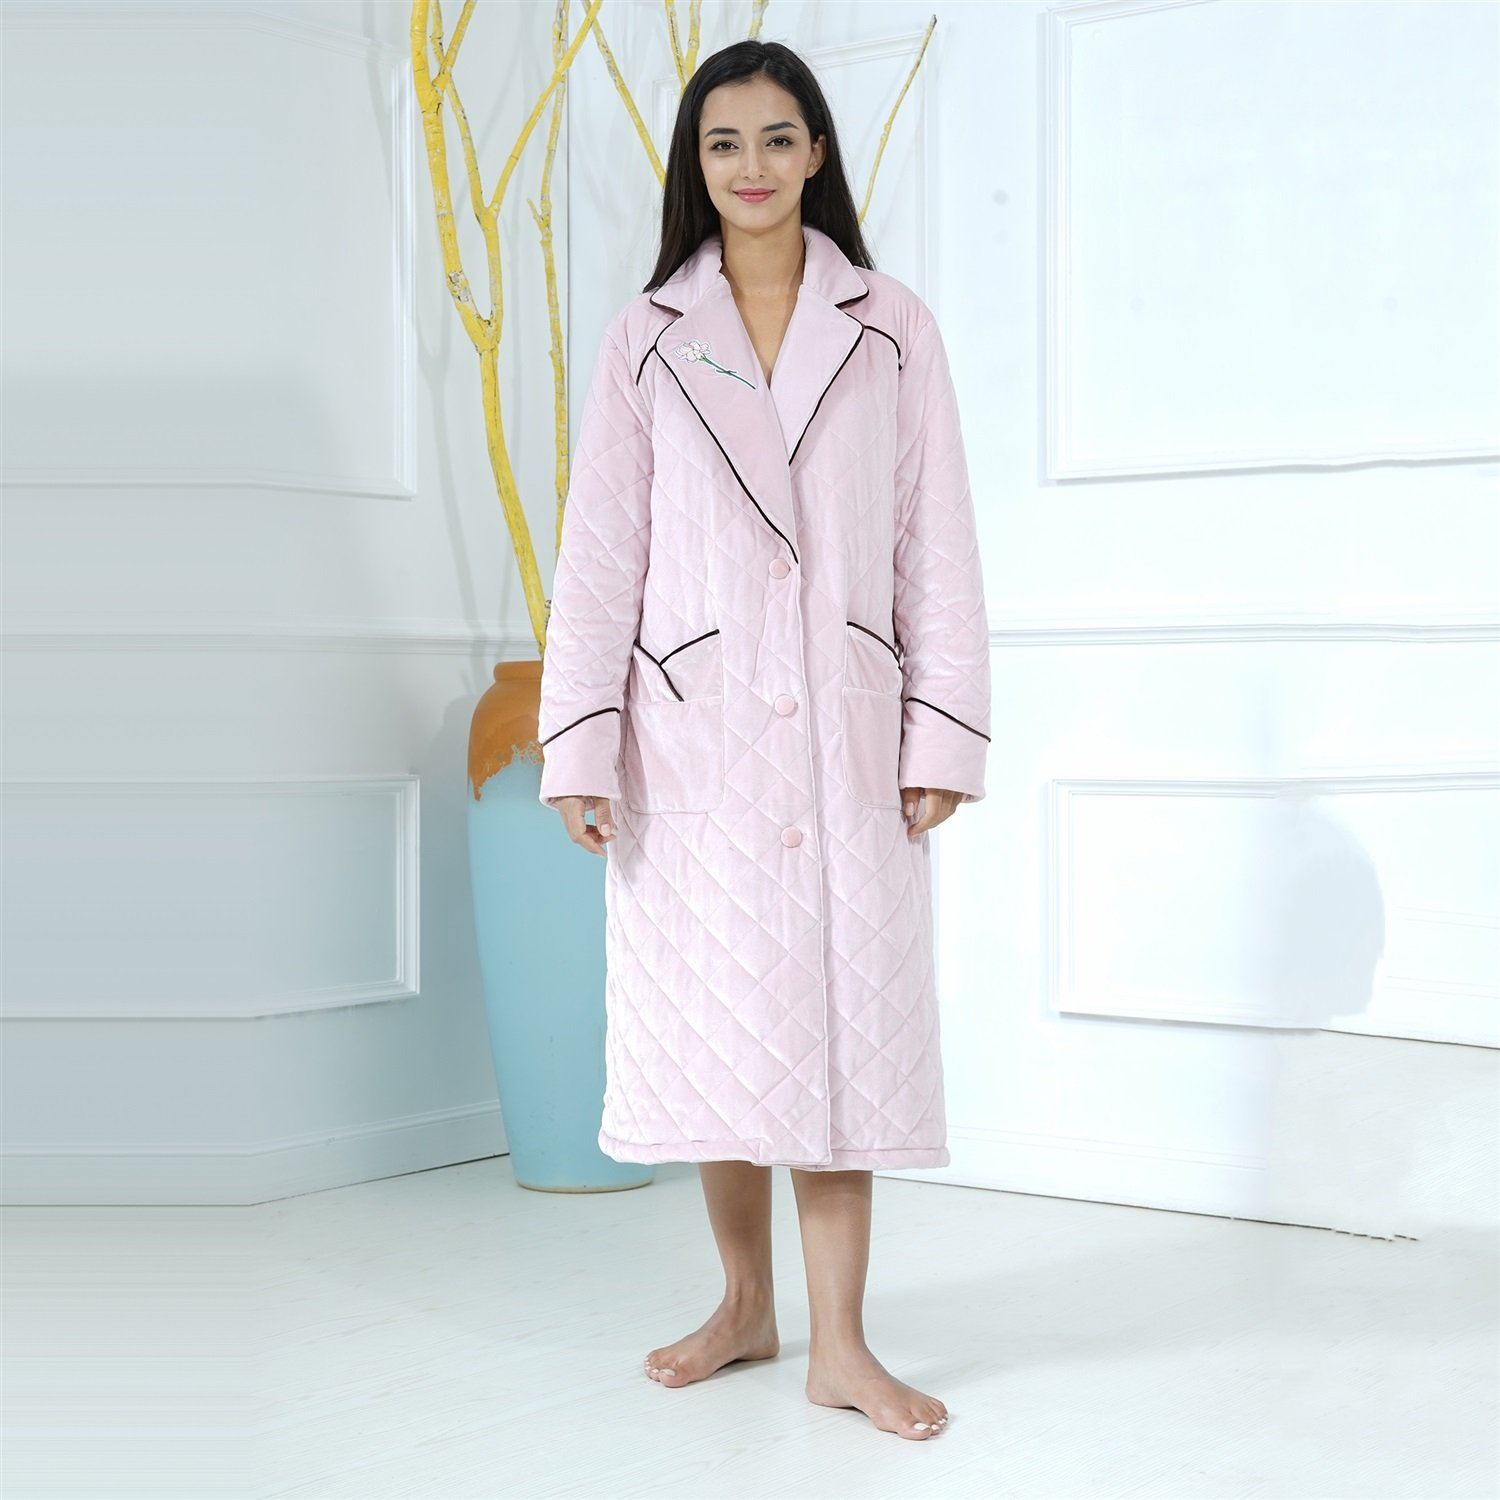 Bathrobe Ladies Nightgown Knitted Cotton Super Soft Thick Bath Robe Two Front Pockets Nightgown Gym Shower Spa Hotel Pink Robe Holiday Present ( Size : XL )